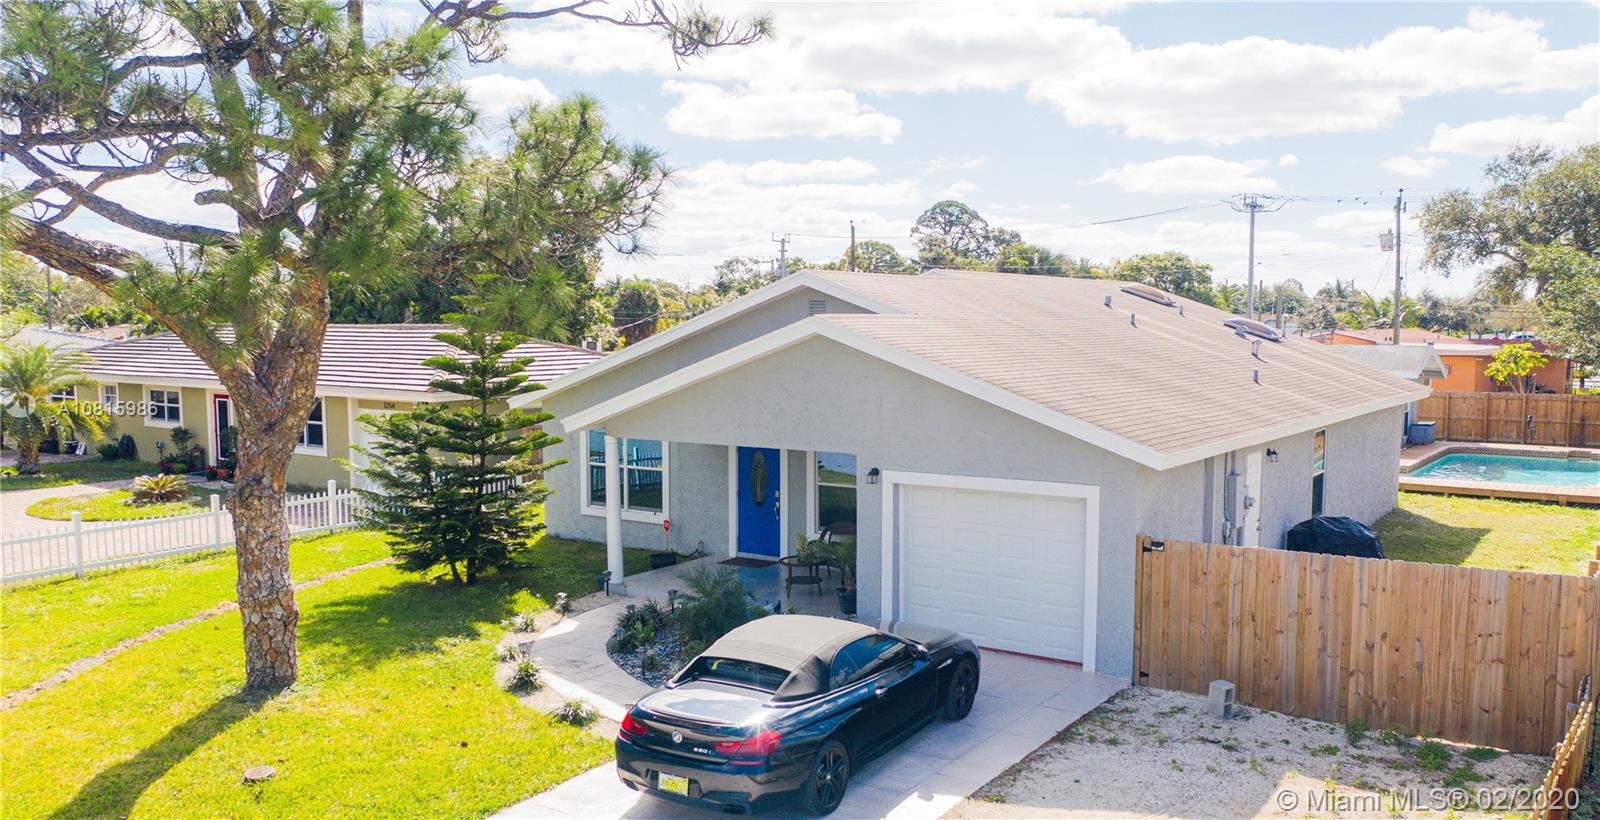 Beautiful  home in the growing community of Oakland Park. The house is updated with modern finishes. Master bedroom features a large walk-in closet and his/her closet space.  Enjoy the pool with a surrounding wooden deck.  A guest house with it's own electric box that can be easily converted into a 4th bedroom/bath guest suite.  Large lot of 10,000 SQFt with plenty of space for entertainment. Less than 5 miles to Fort Lauderdale International airport and Fort Lauderdale Beach.  There are two exciting new development copy and paste link below to learn morehttps://www.sun-sentinel.com/real-estate/fl-ne-oakland-park-development-20190404-story.html